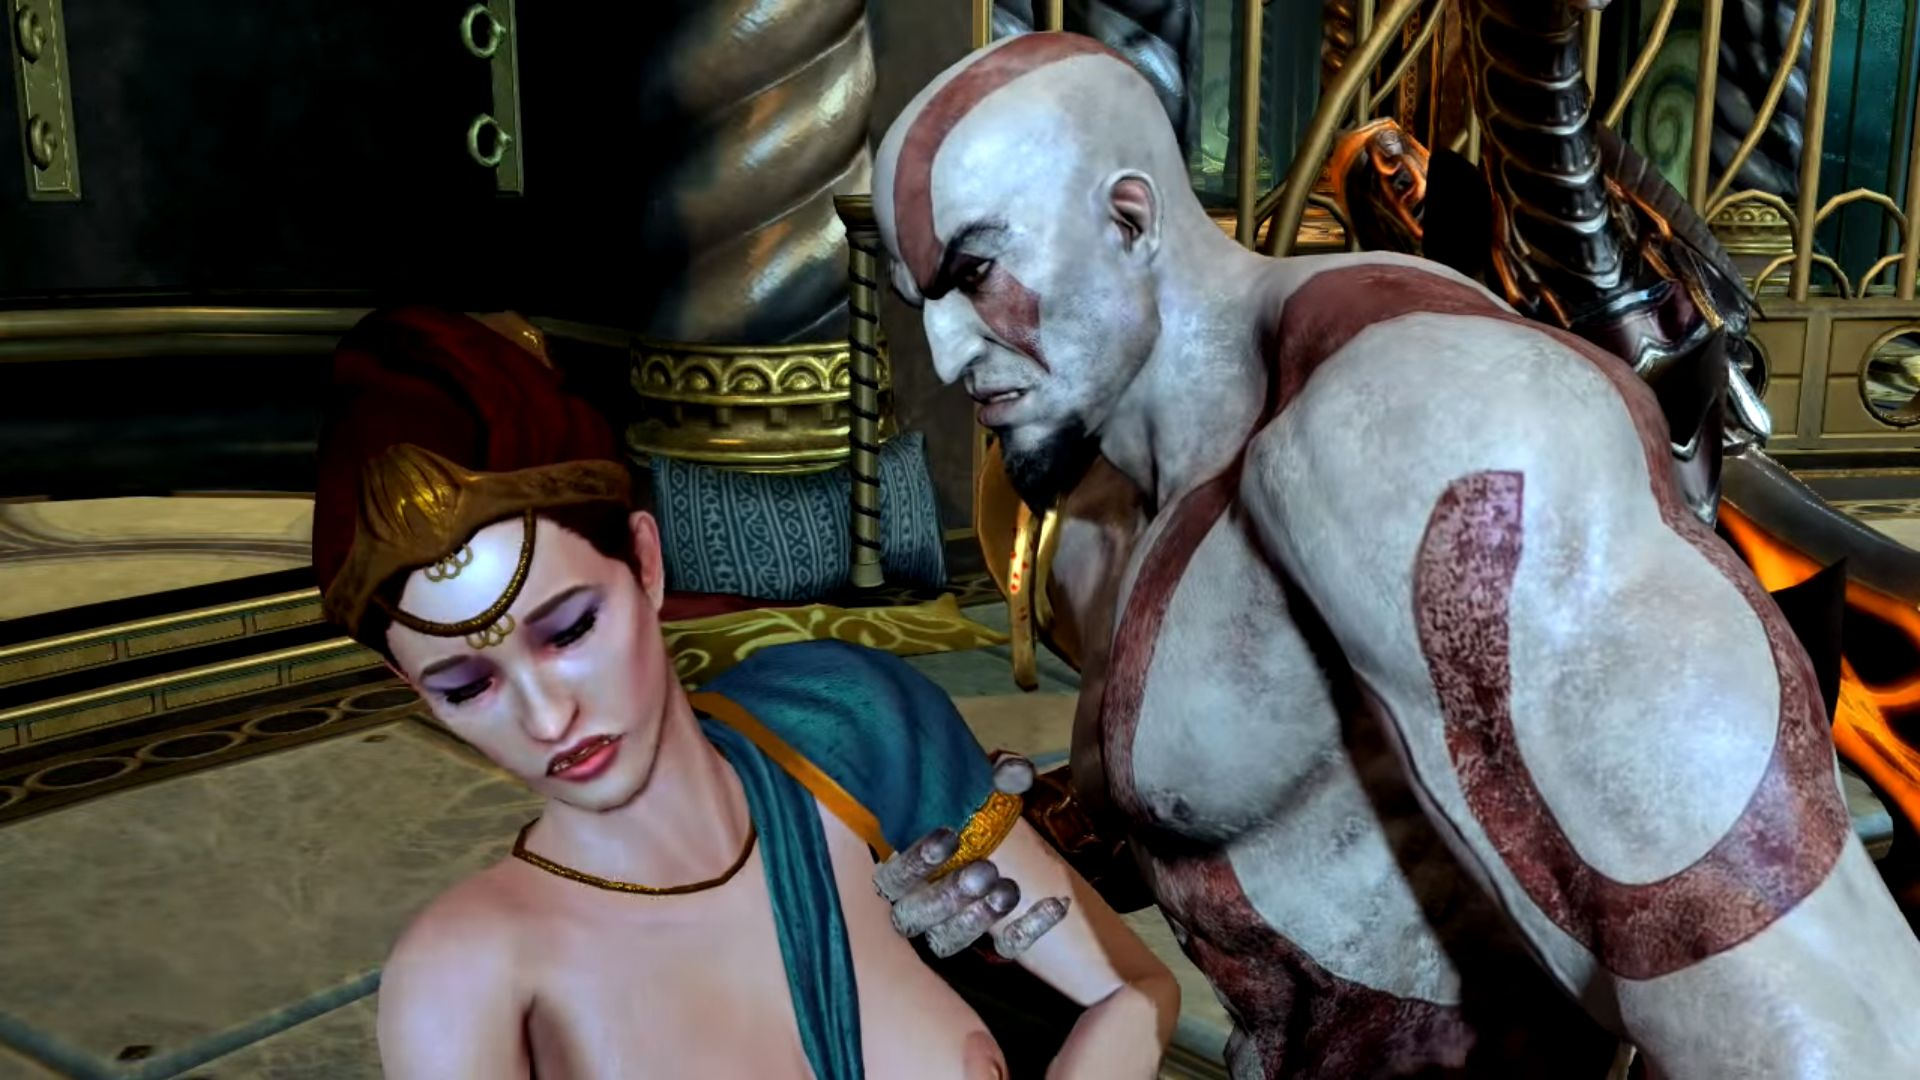 God of war must move beyond its history of misogyny if it wants to